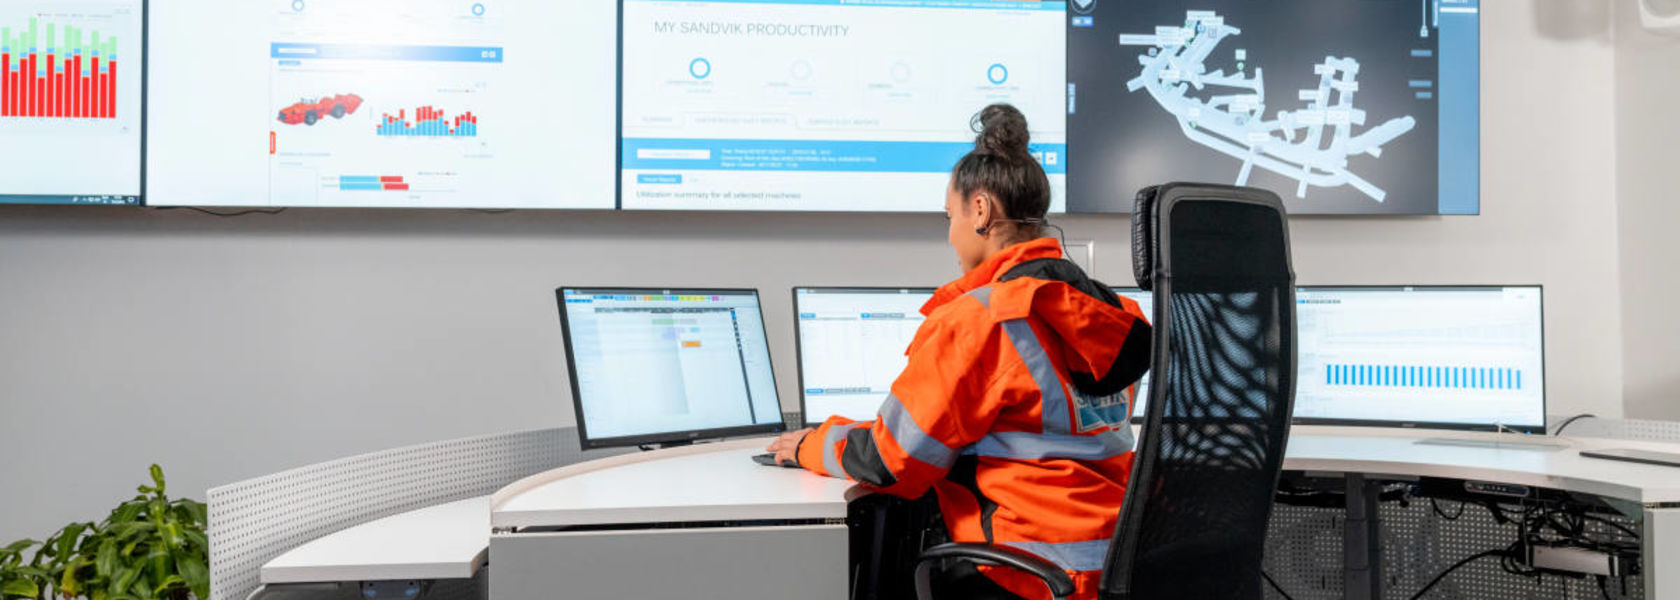 Sandvik to unveil new optimisation tech at #DisruptMining